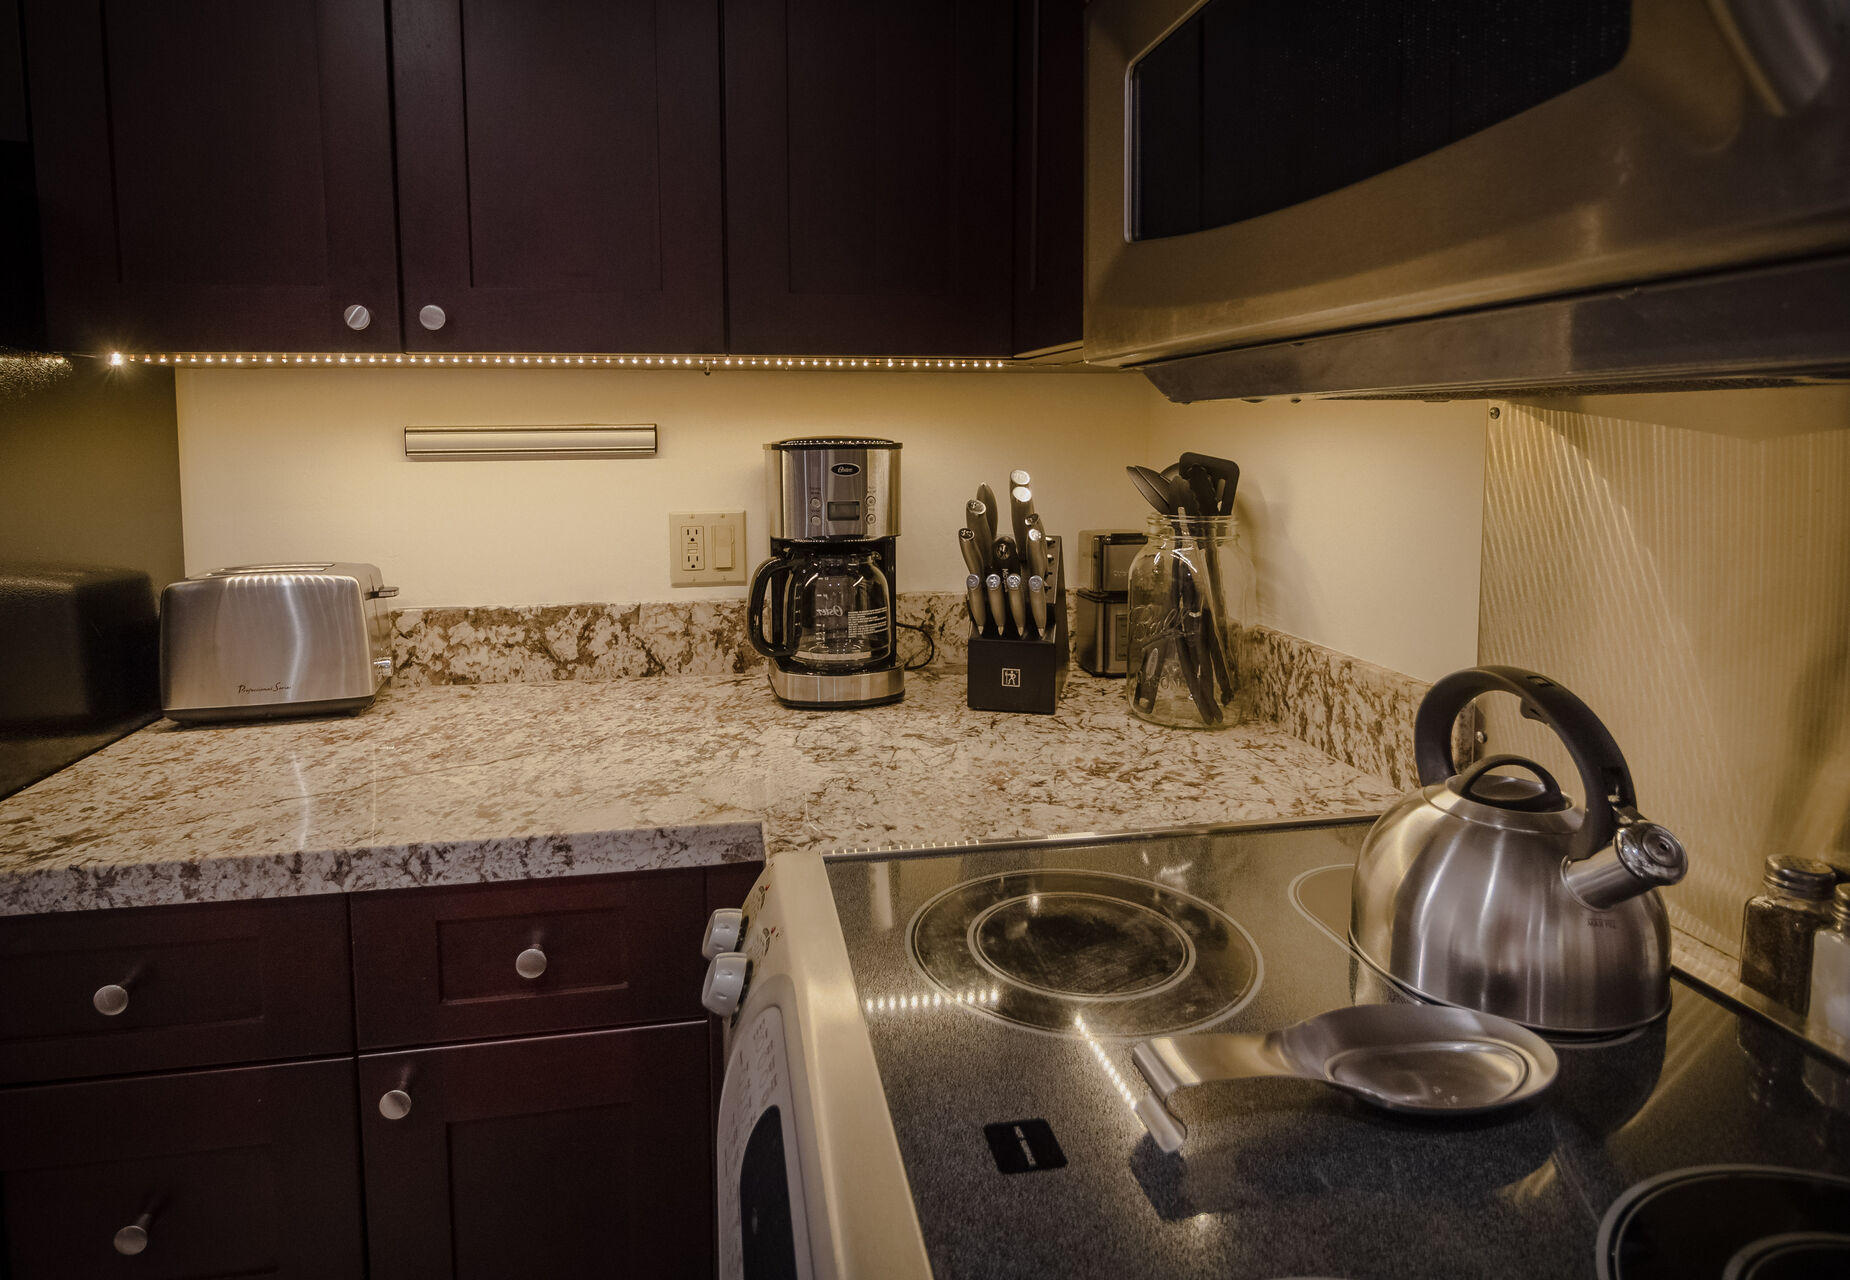 Kitchen counter and oven.